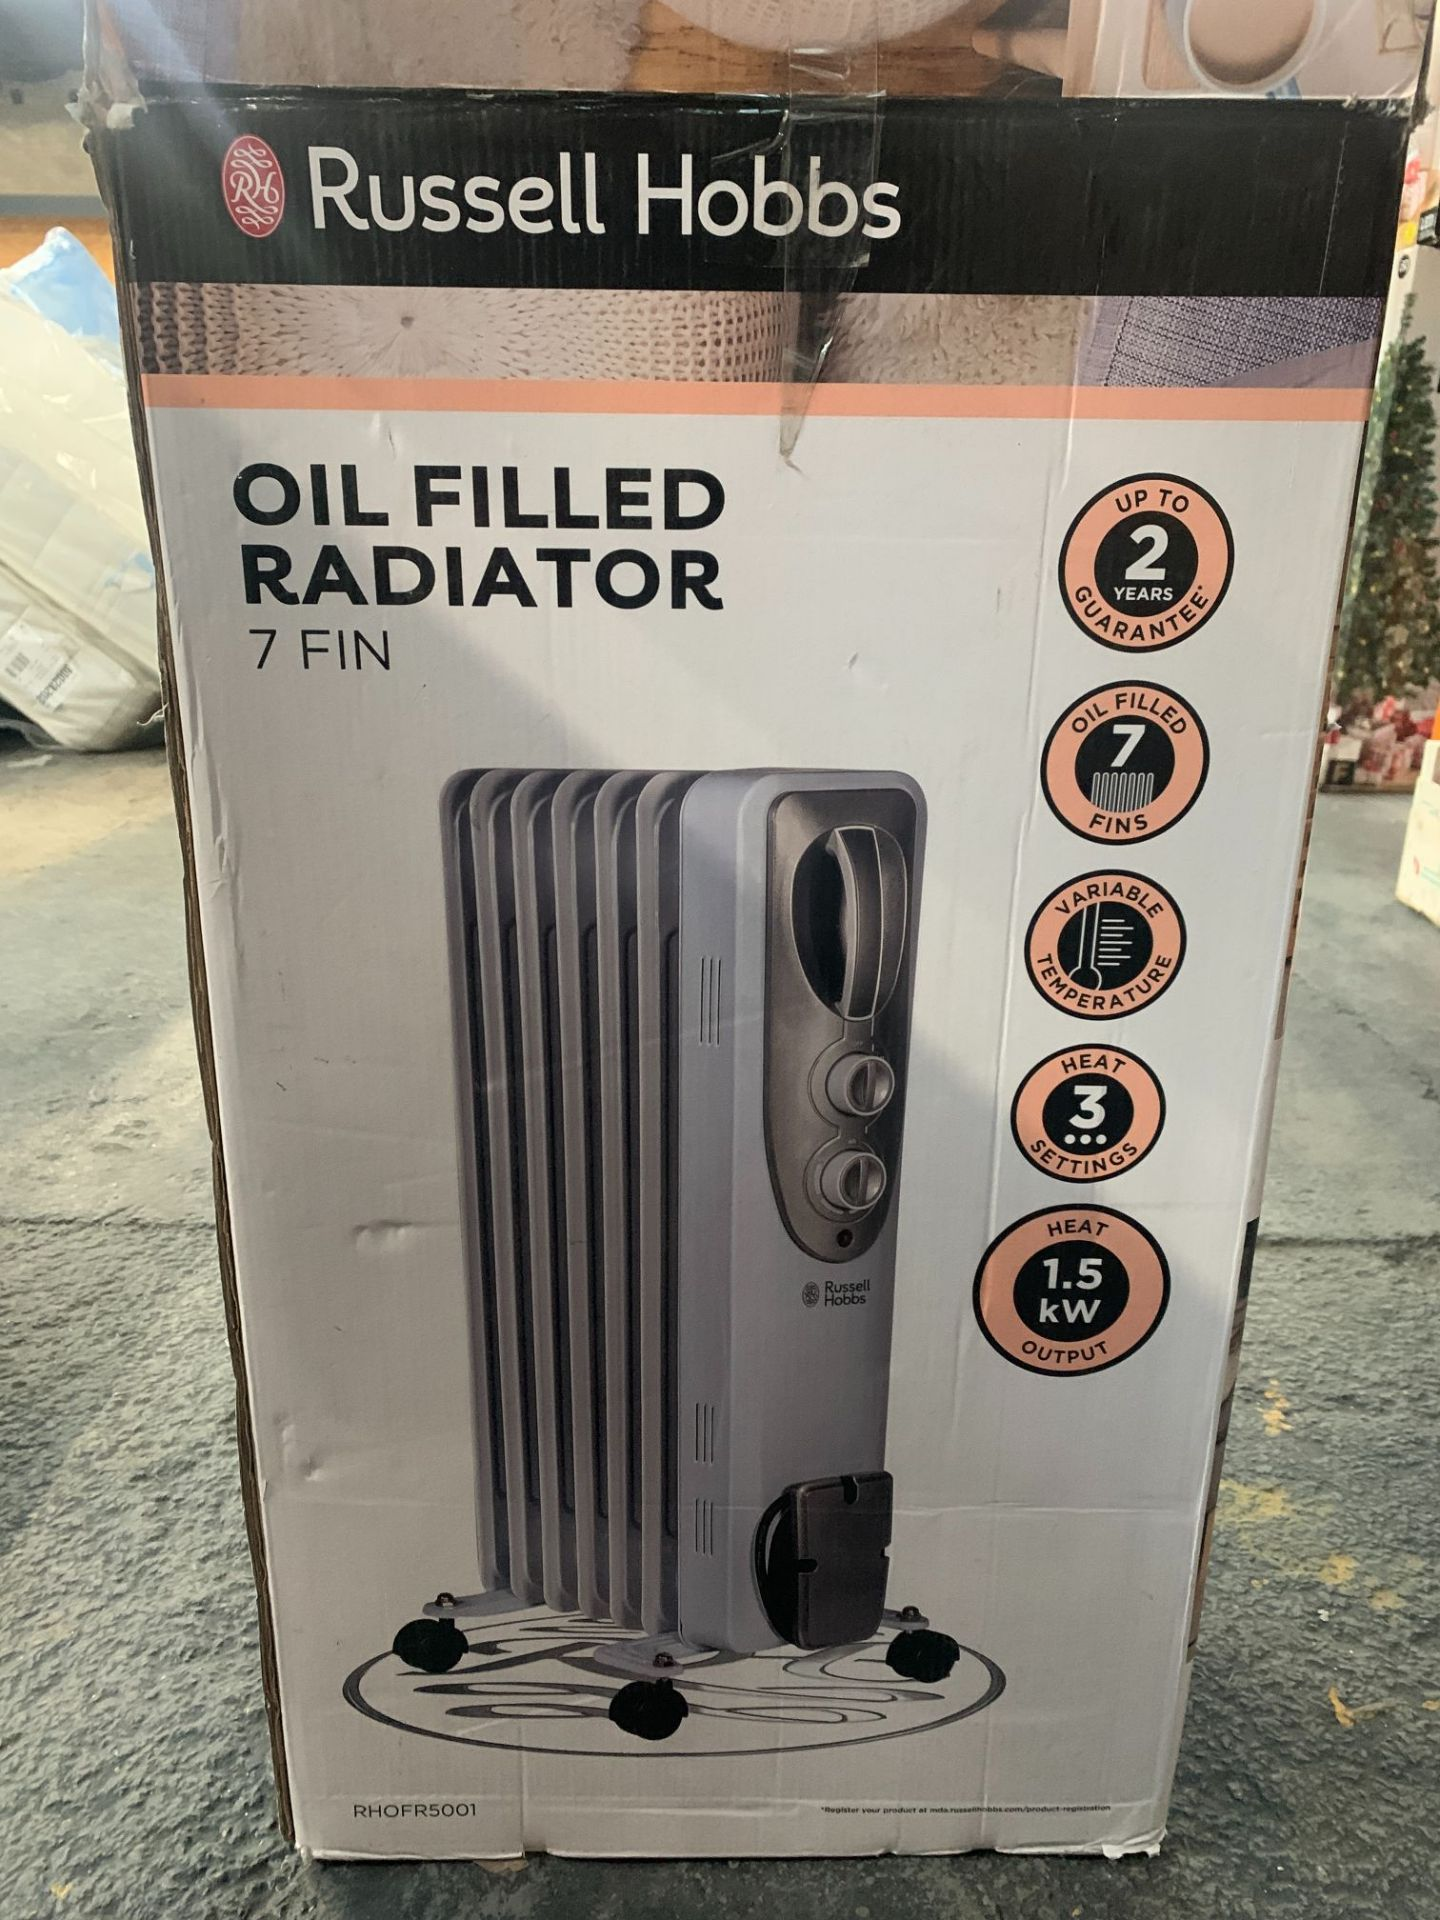 RUSSELL HOBBS OIL FILLED RADIATOR 7 FIN - Image 2 of 2